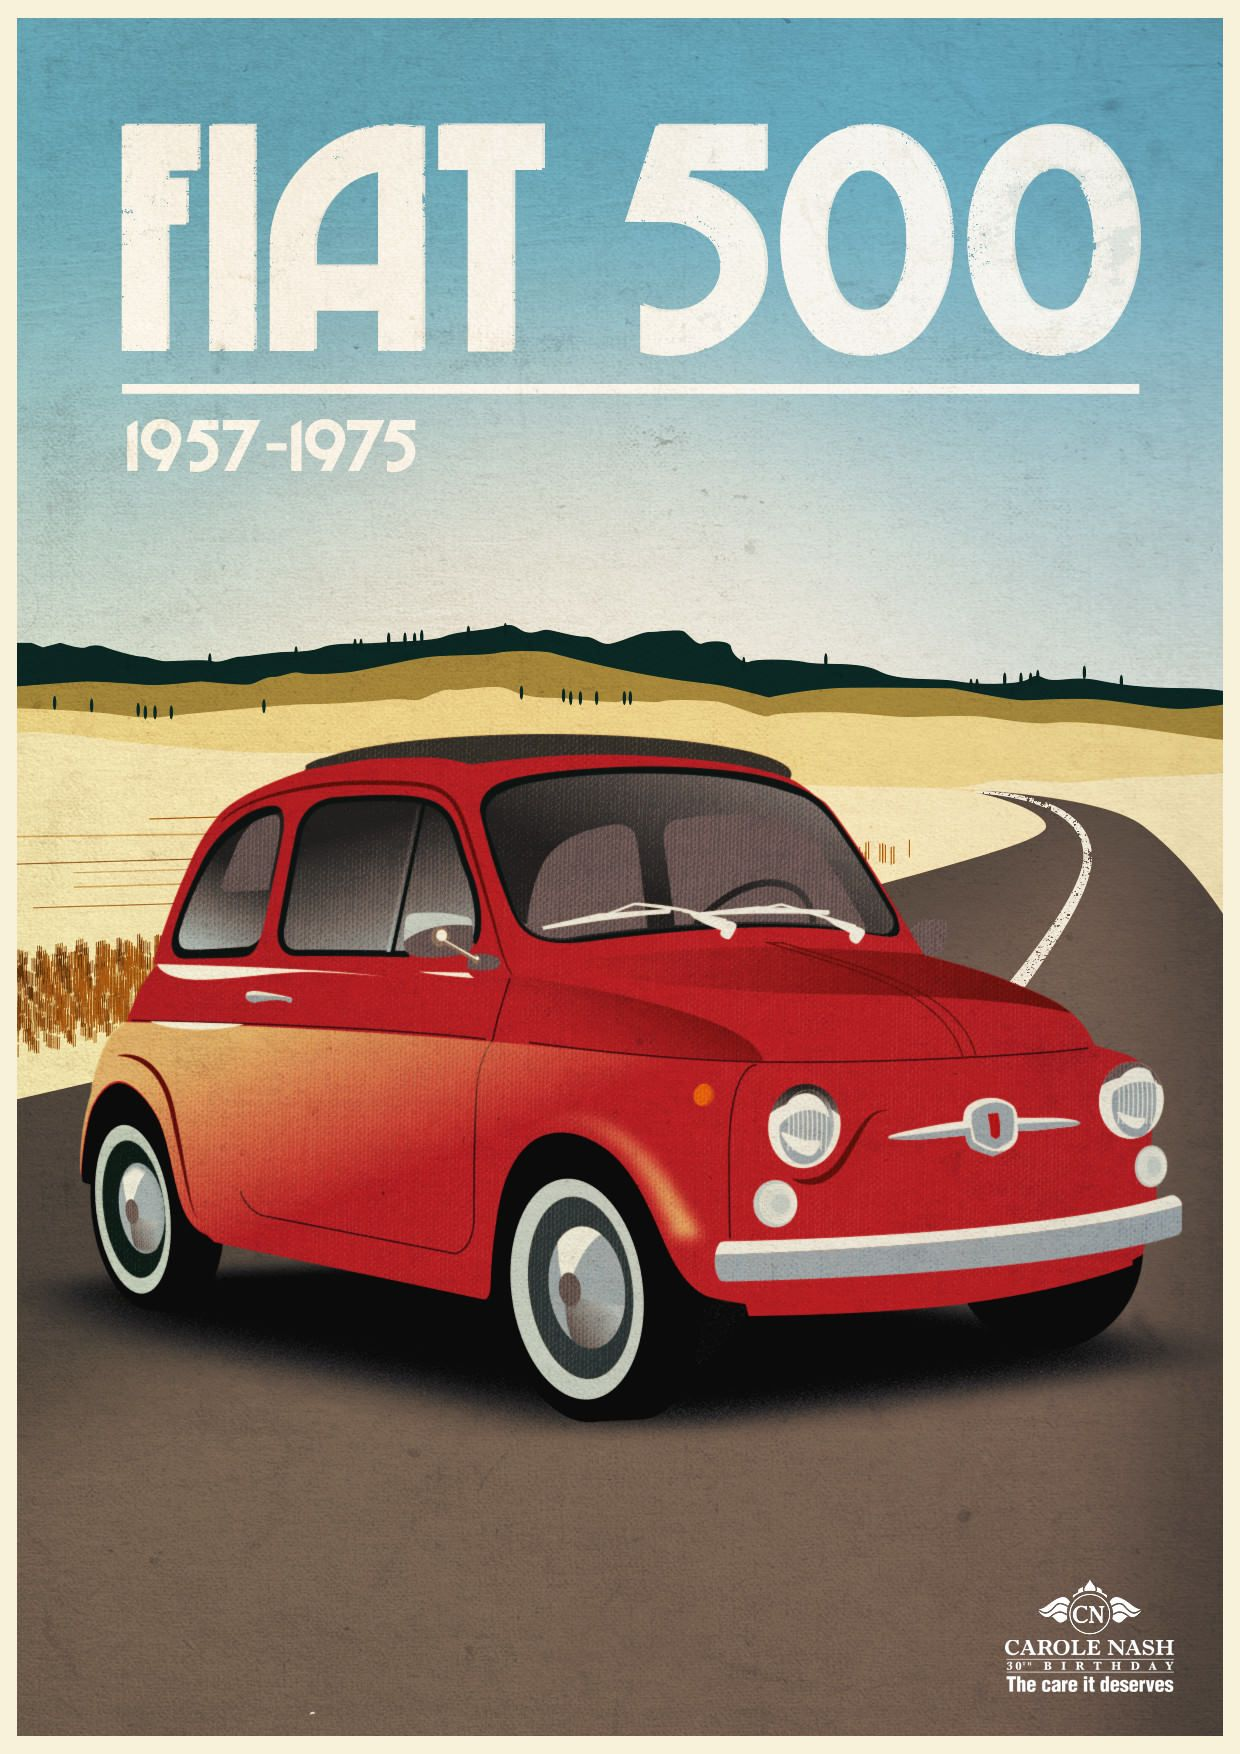 Fiat 500 fiat 500 pinterest fiat motorcycle art and for Decoration murale fiat 500